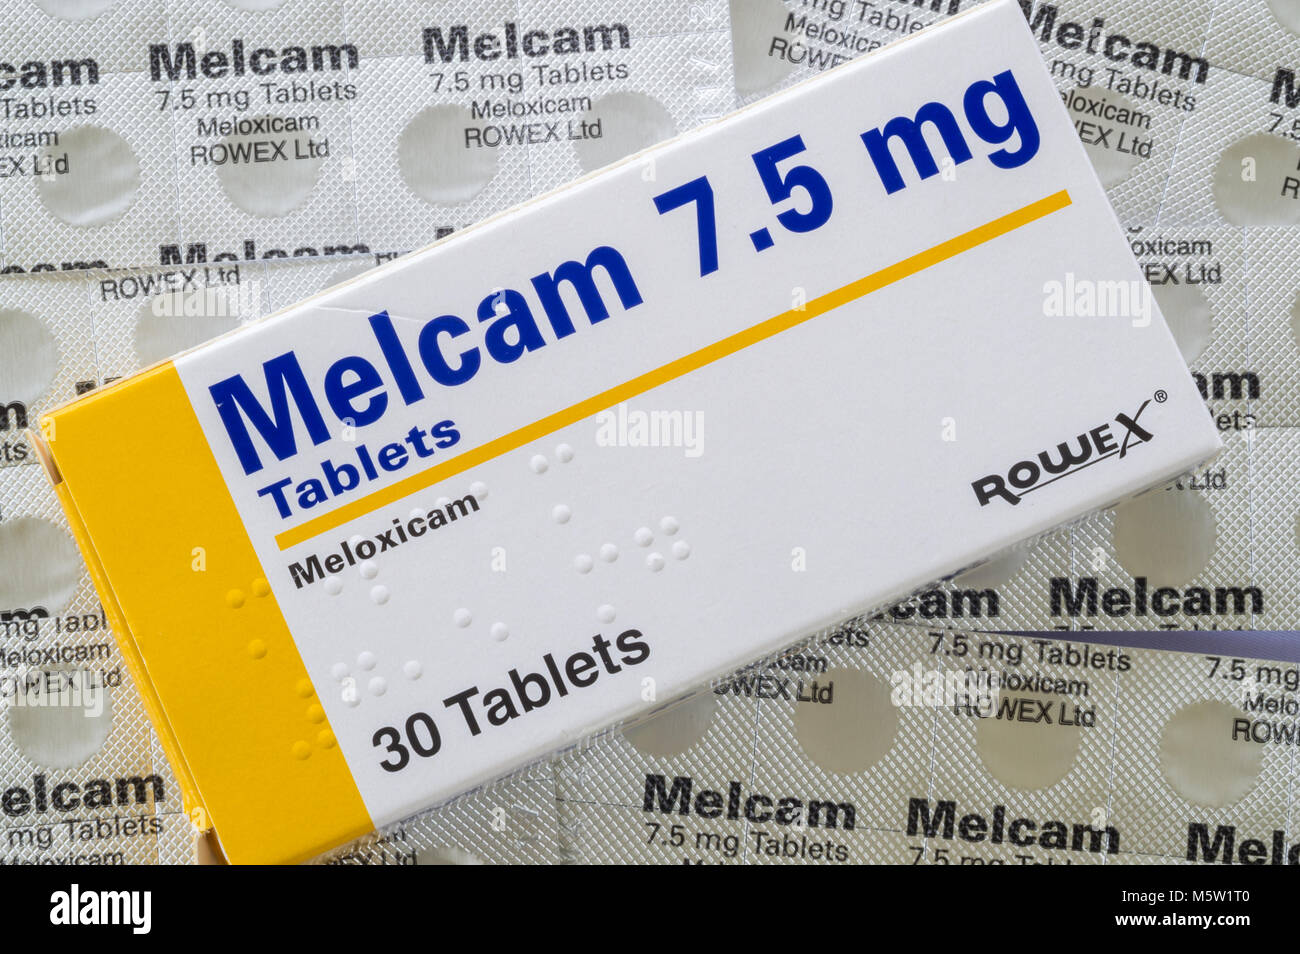 Melcam/Meloxicam 7.5mg anti-inflammatory tablets box and blister packs from above. - Stock Image